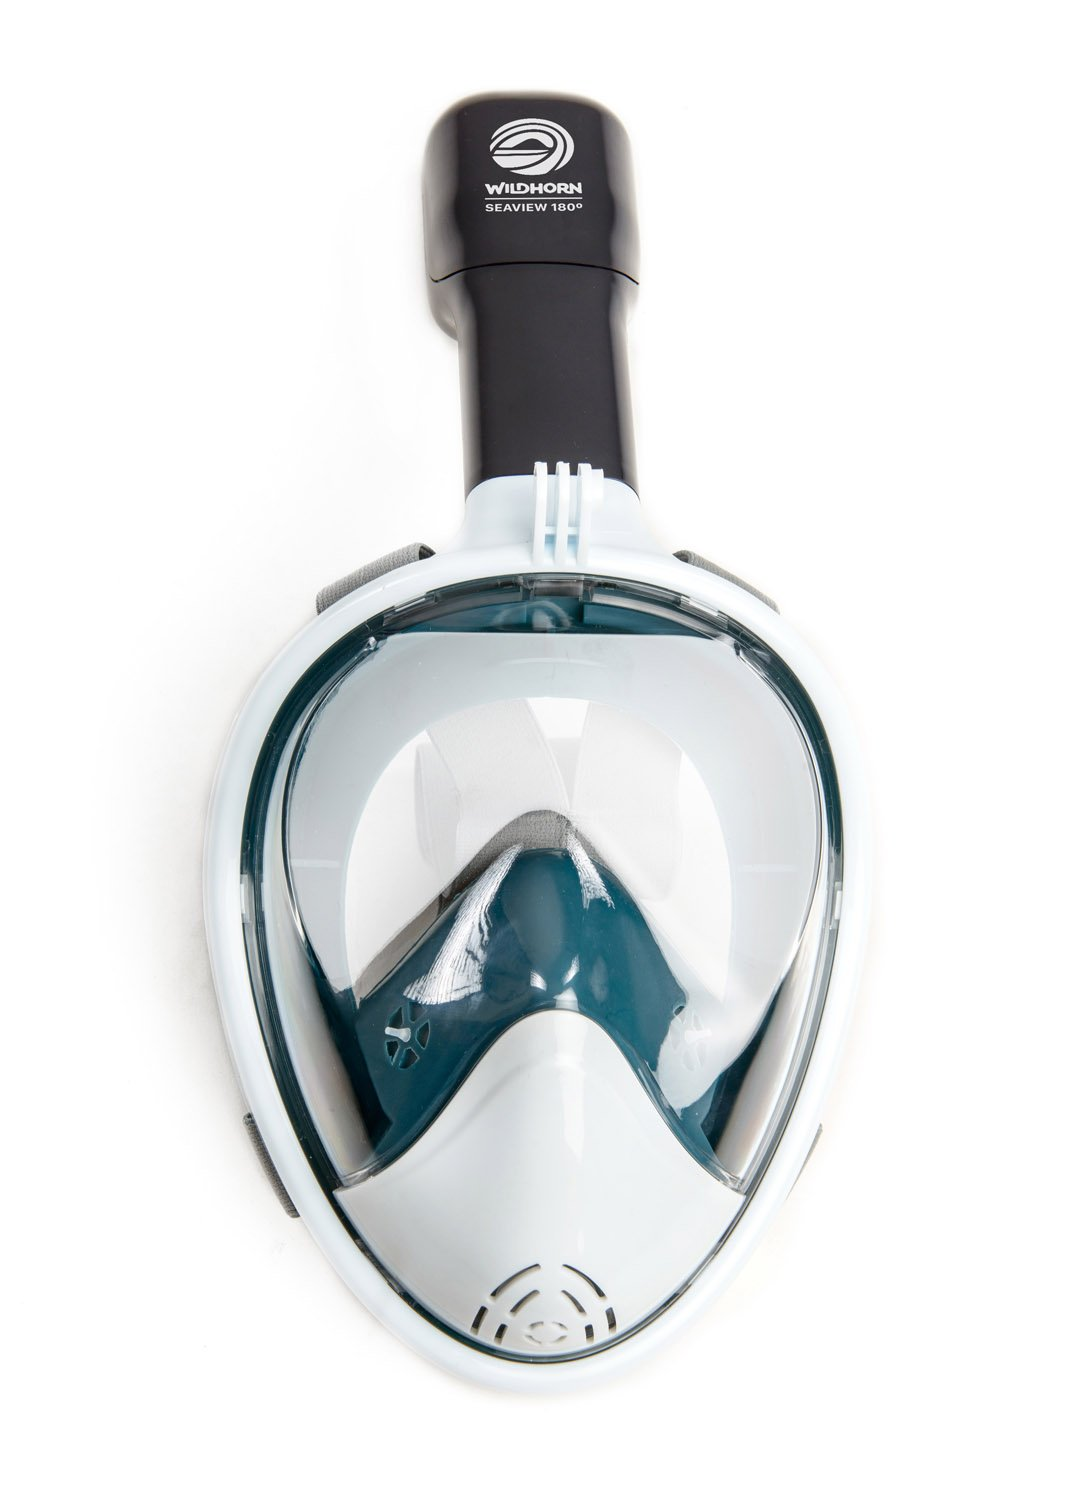 Seaview 180 Degree Panoramic Snorkel Mask- Full Face Design,Panoramic White / Teal,Small/Medium by WildHorn Outfitters (Image #1)